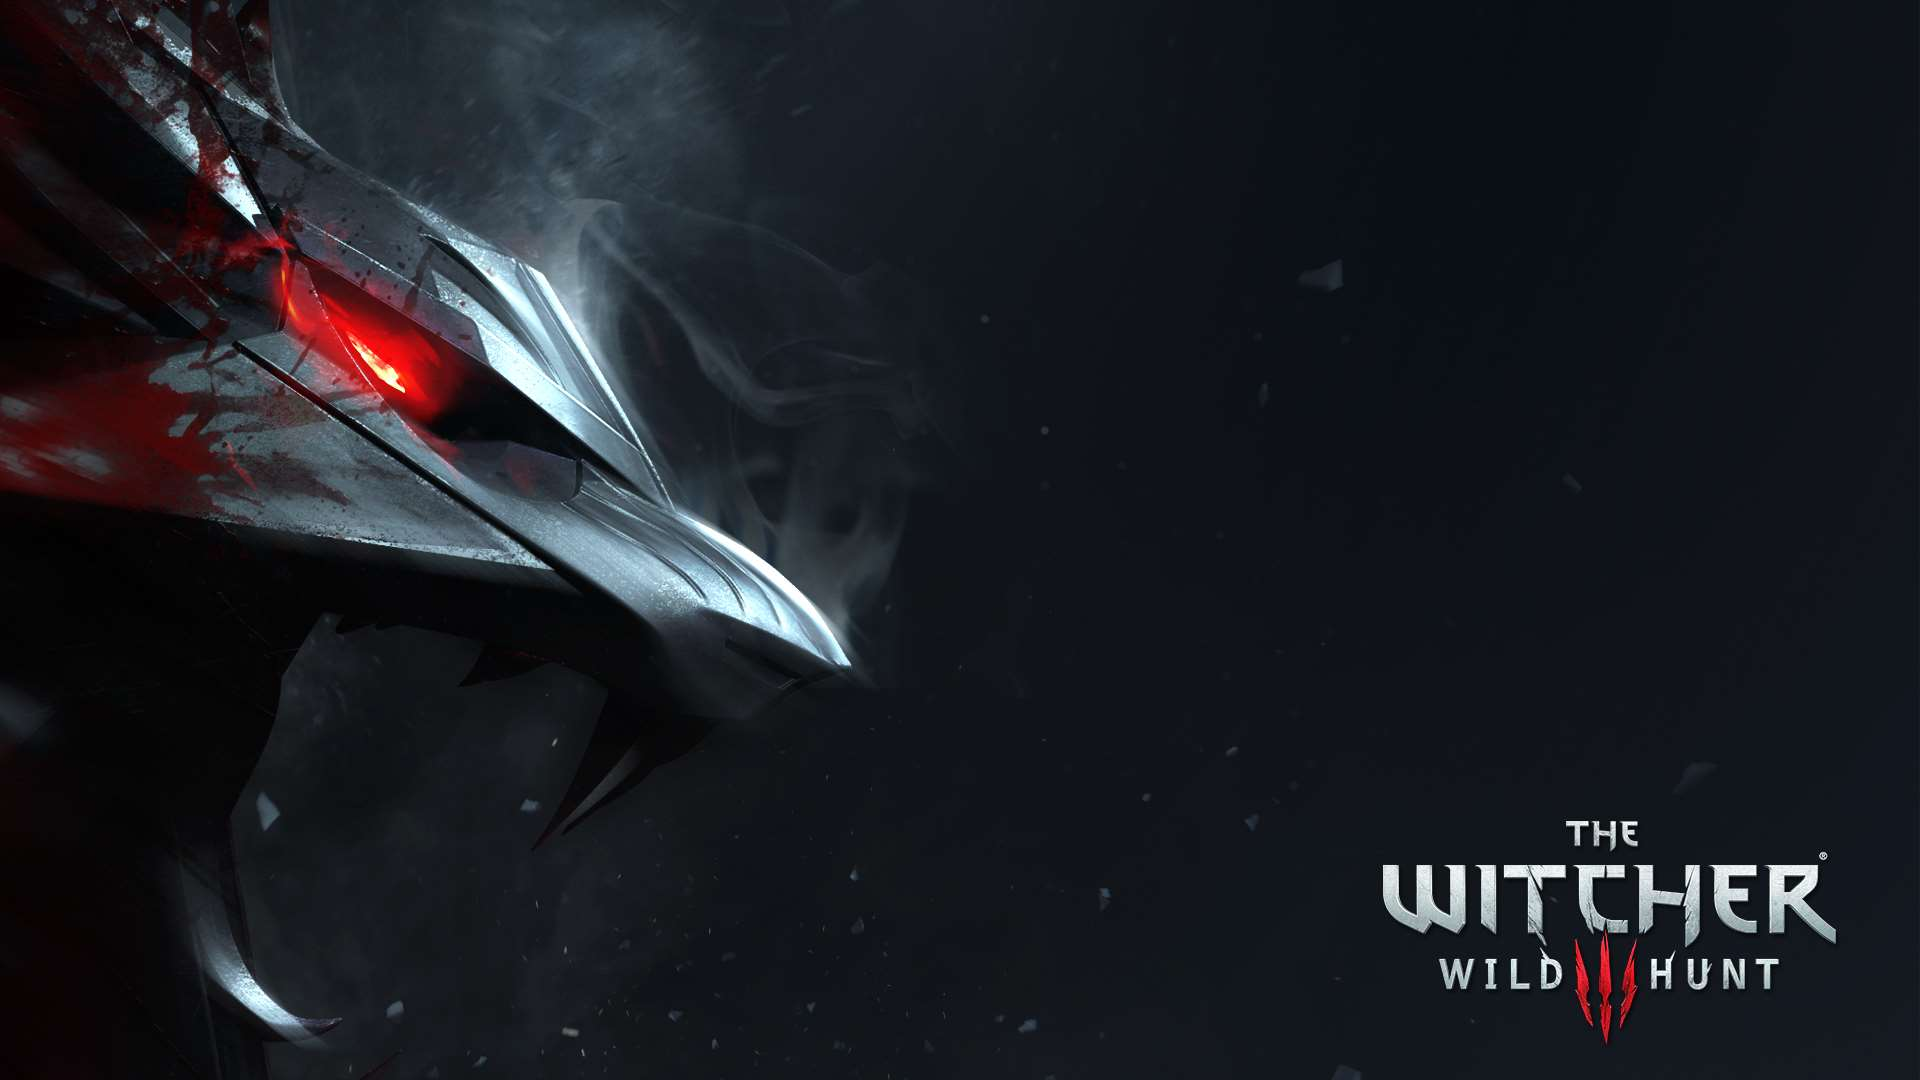 The Witcher 3 Wild Hunt The Witcher 3 Wild Hunt Wallpaper The